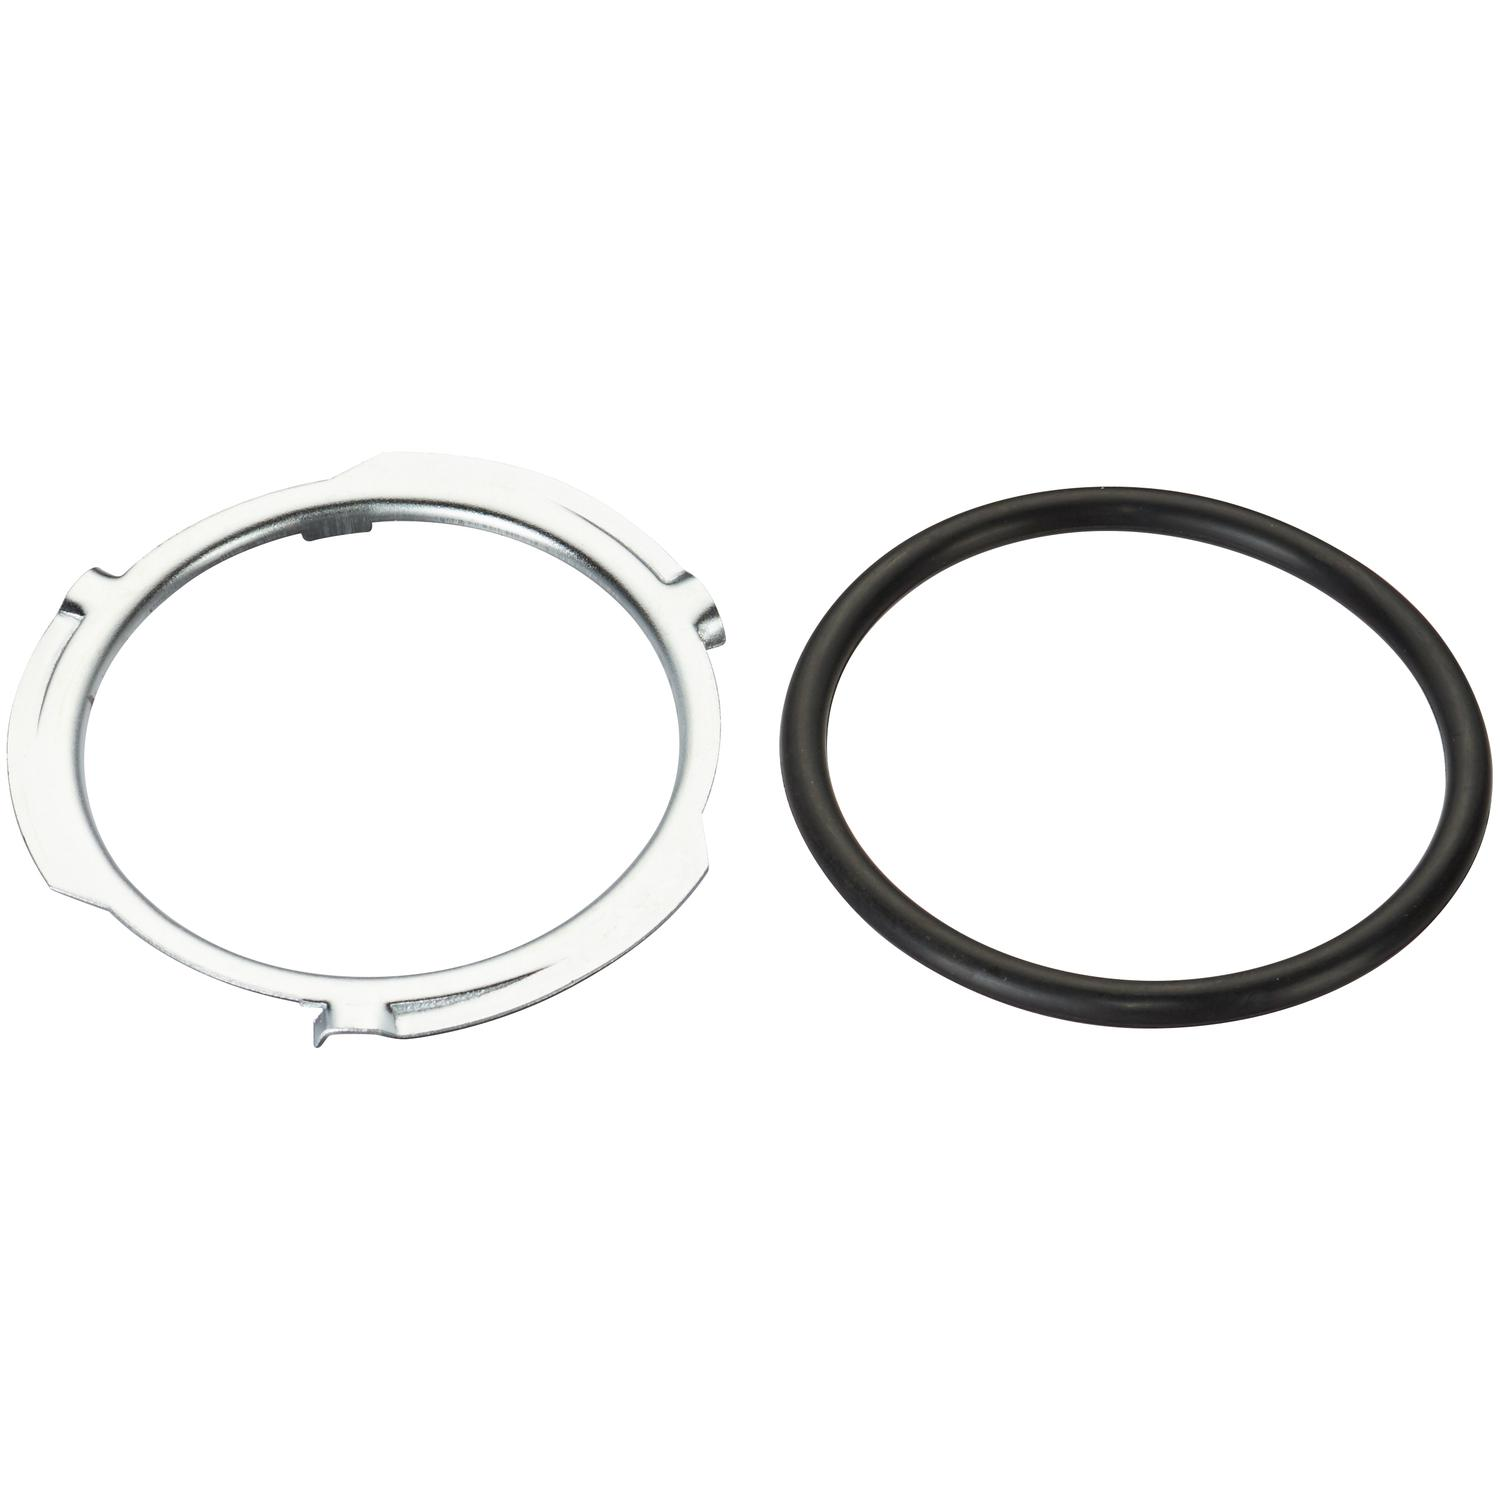 Fuel Tank Lock Ring